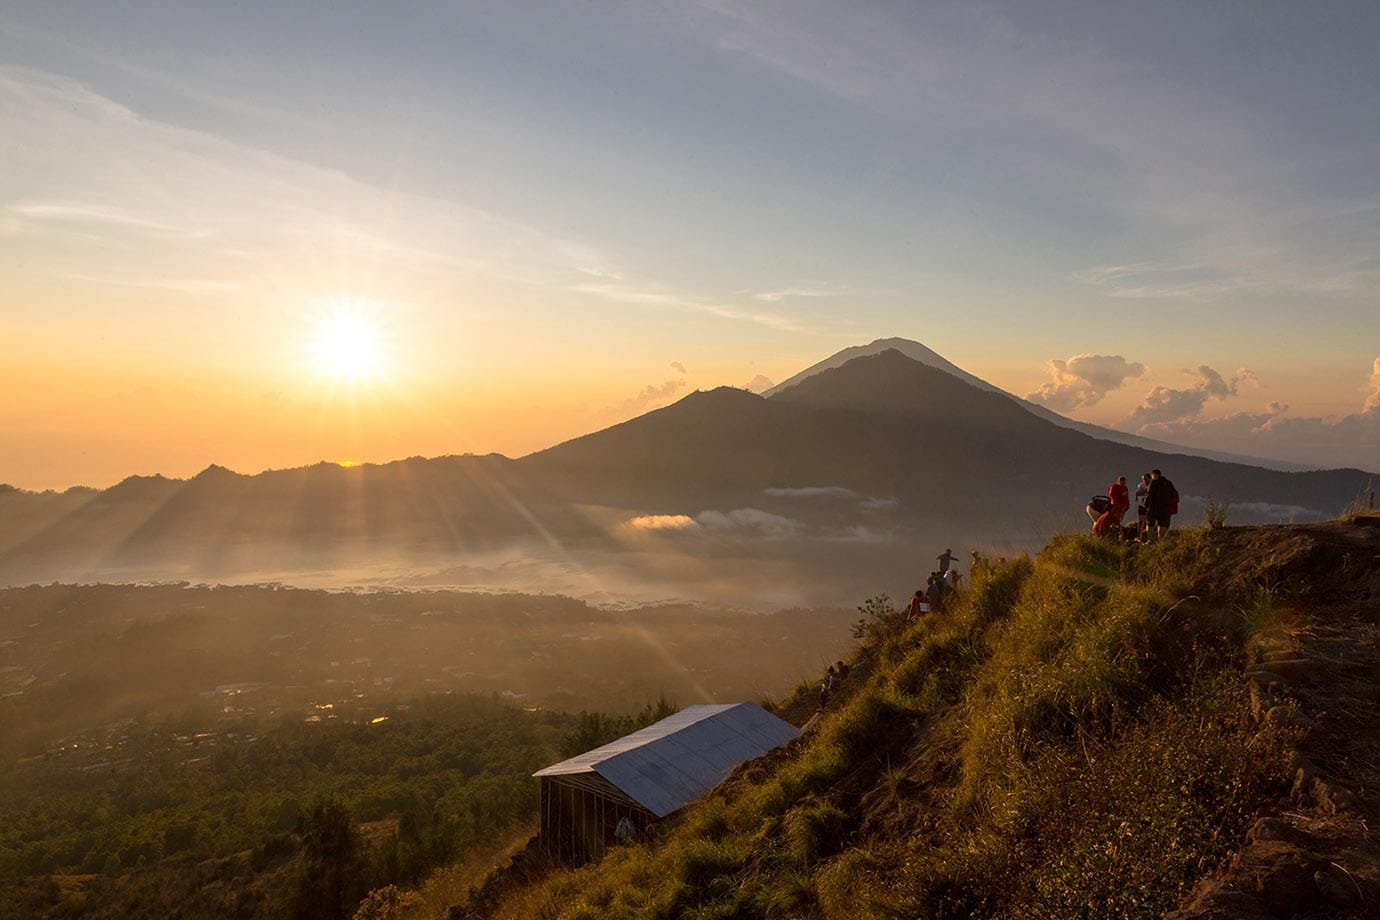 Hiking up Mount Batur for sunrise